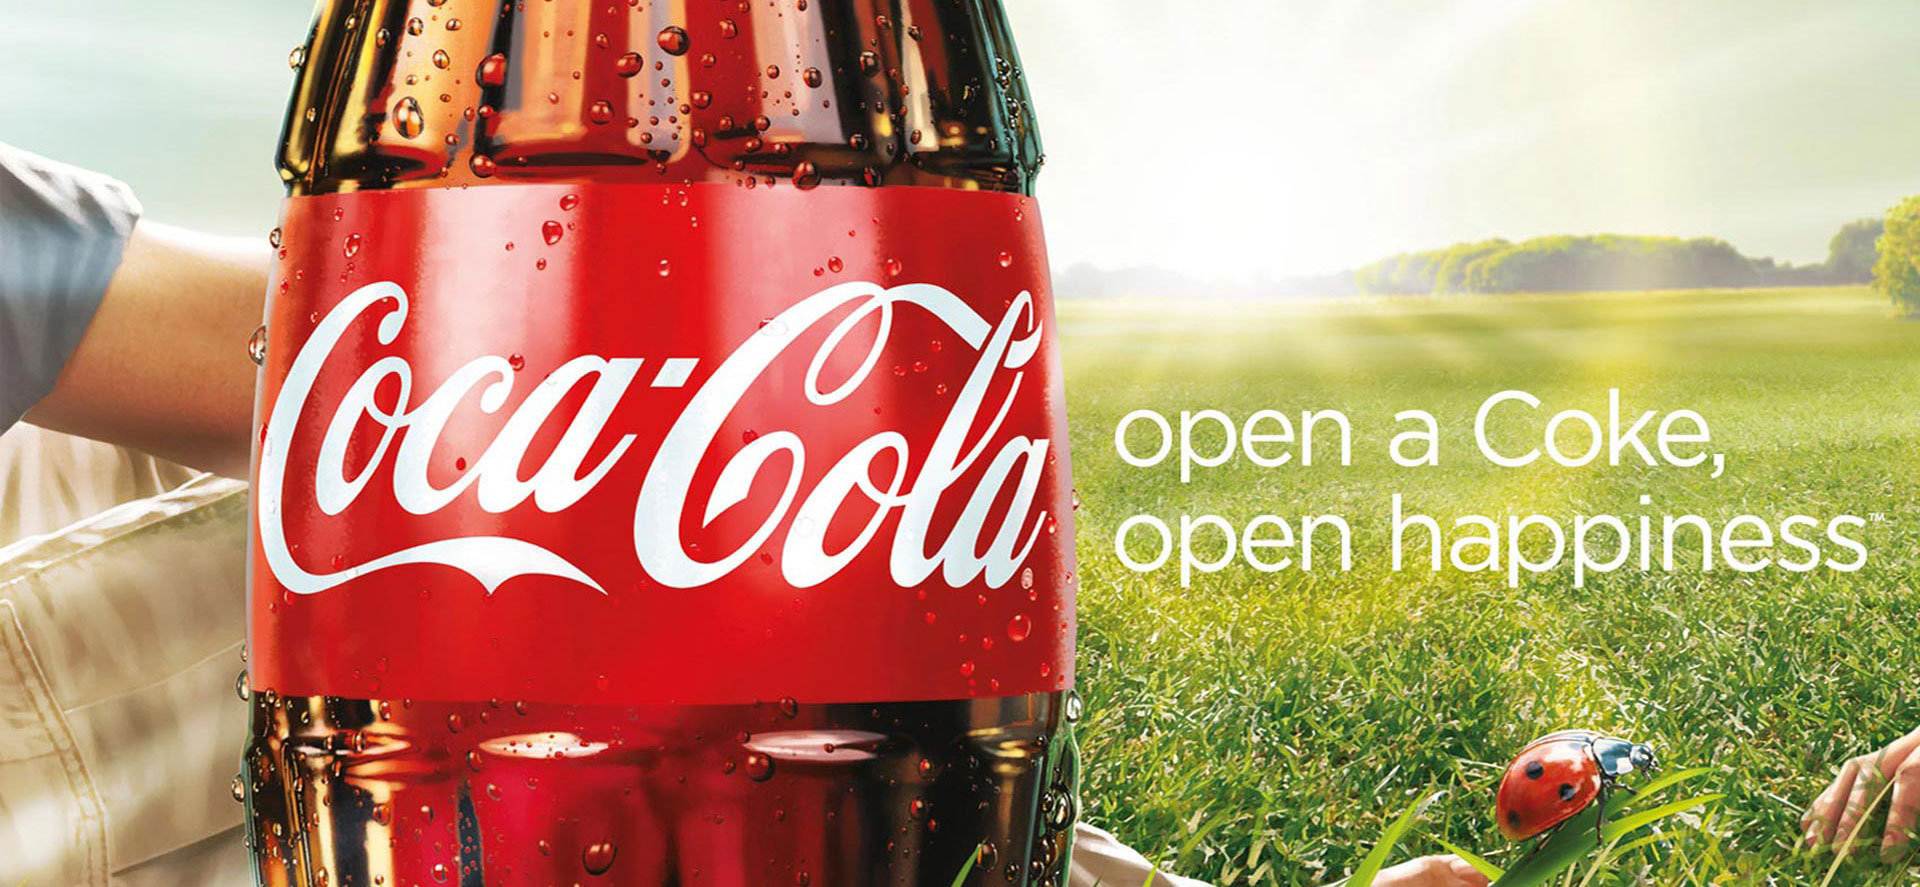 Three Marketing Lessons from Coca-Cola